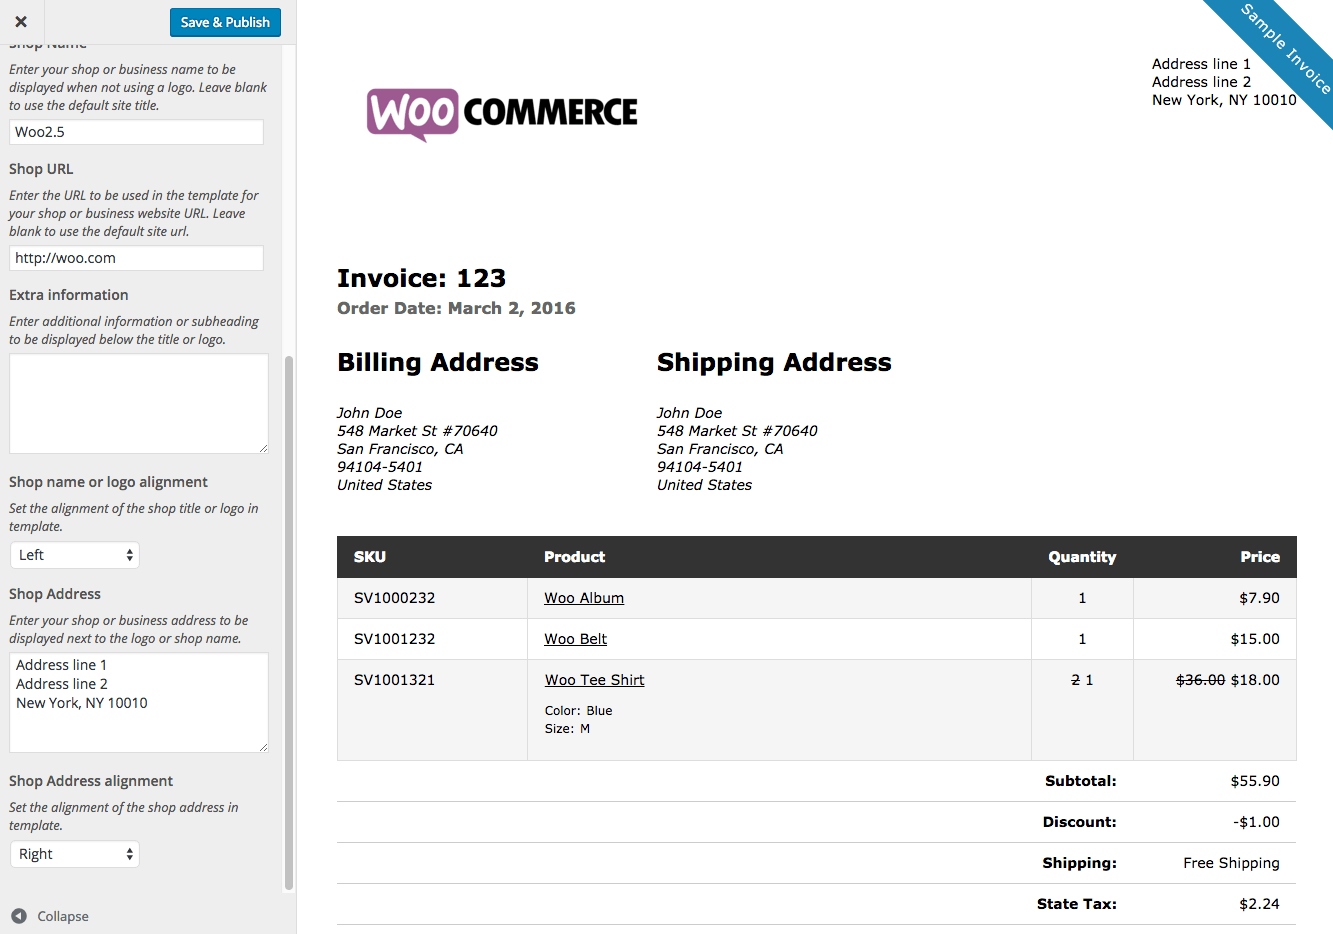 Ultrablogus  Splendid Print Invoices Amp Packing Lists  Woocommerce With Gorgeous Woocommerce Print Invoices  Packing Lists Customizer With Breathtaking Global Depository Receipts Also I  Receipt Notice In Addition Brevard County Business Tax Receipt And Filing Receipt As Well As  Hand Receipt Additionally Check Receipt Template From Woocommercecom With Ultrablogus  Gorgeous Print Invoices Amp Packing Lists  Woocommerce With Breathtaking Woocommerce Print Invoices  Packing Lists Customizer And Splendid Global Depository Receipts Also I  Receipt Notice In Addition Brevard County Business Tax Receipt From Woocommercecom